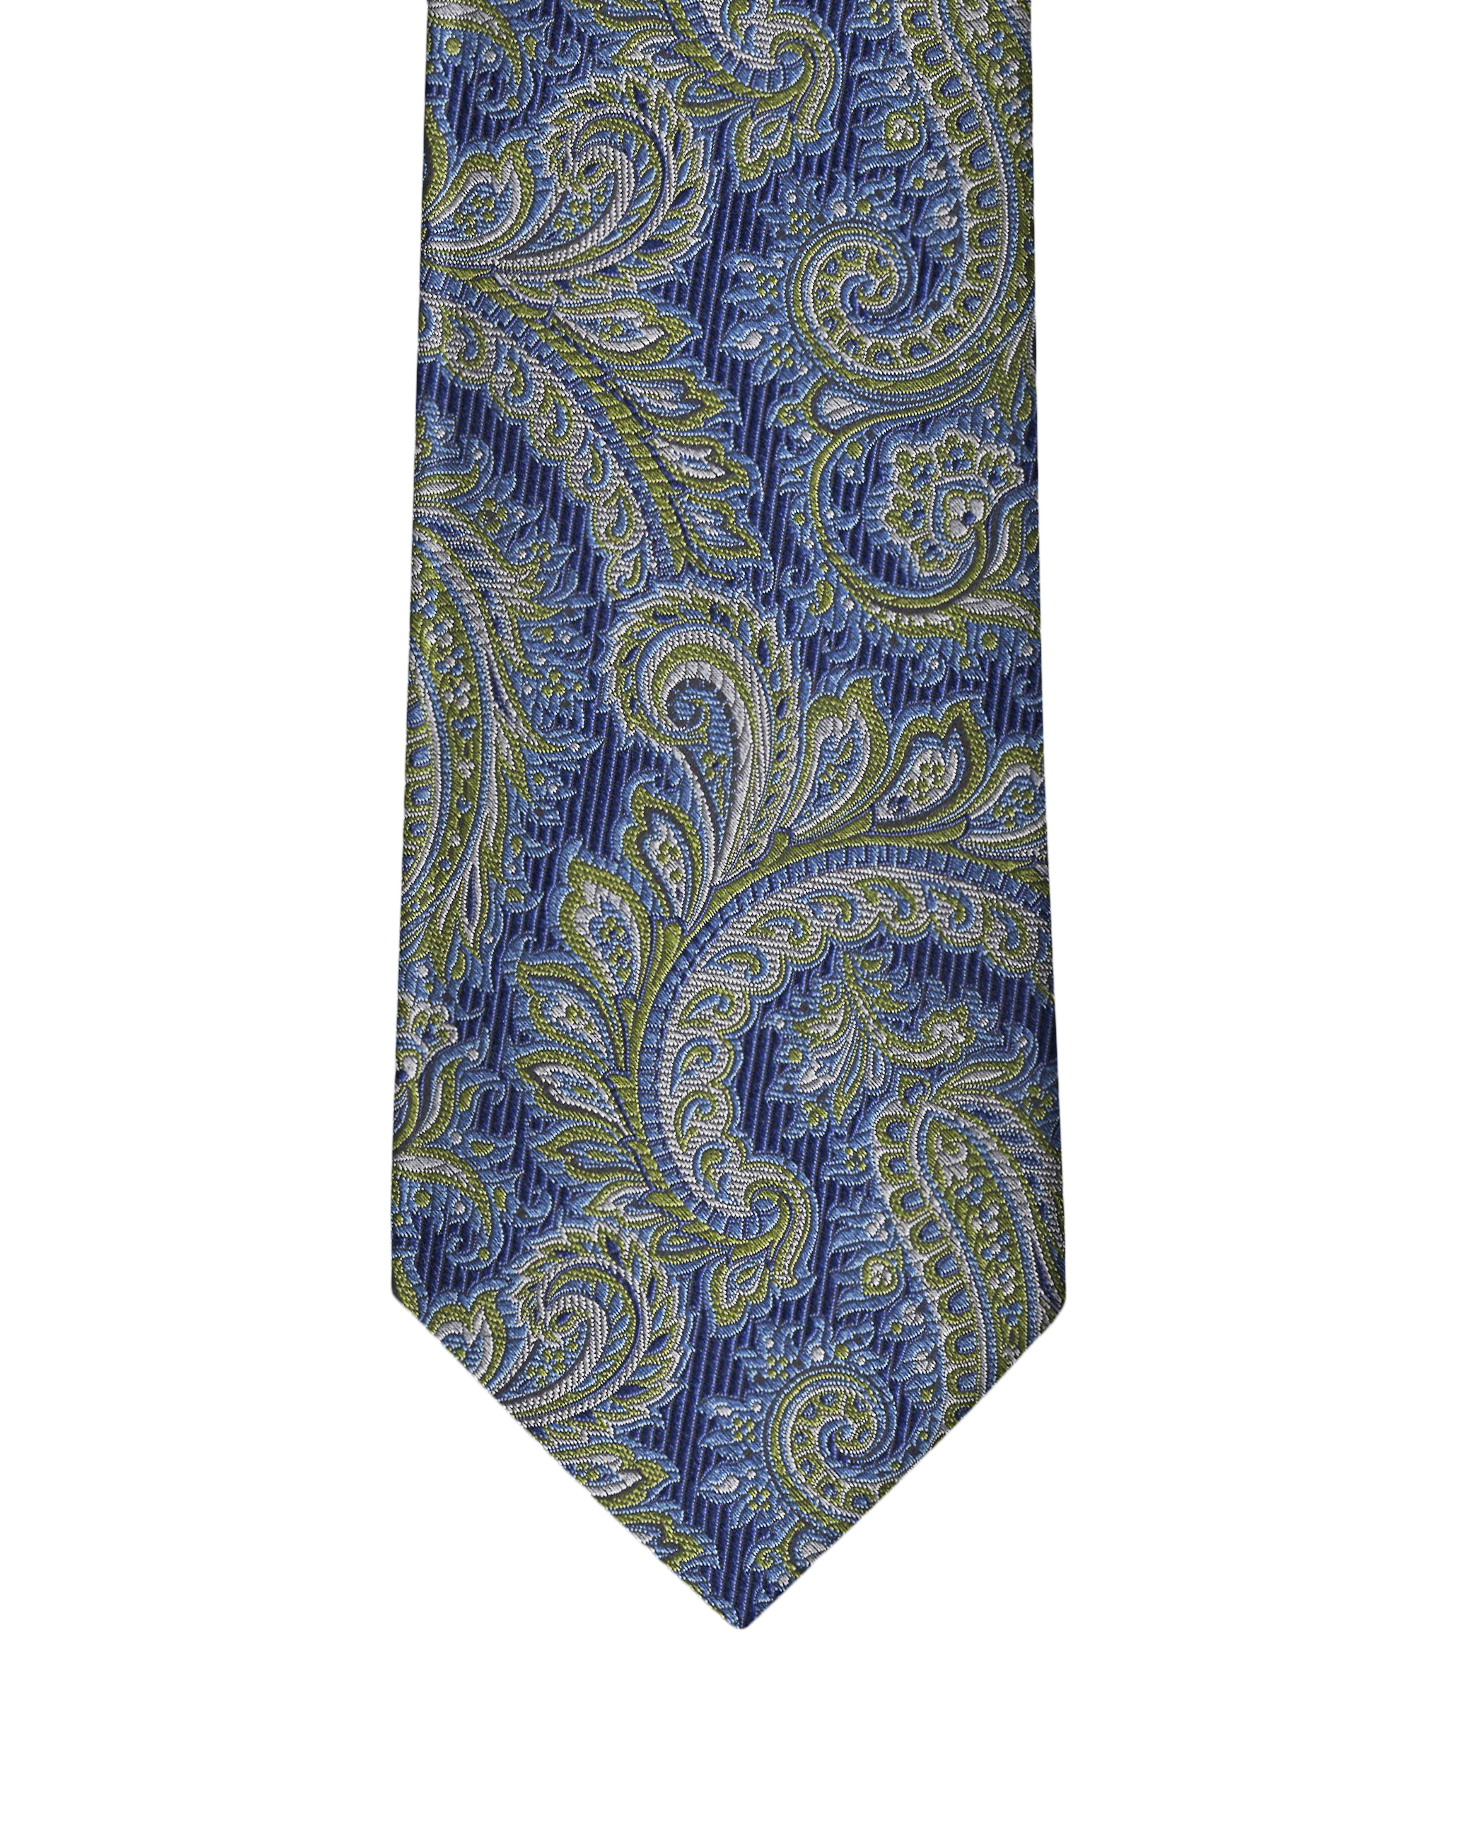 Navy & Lime Green Paisley Necktie